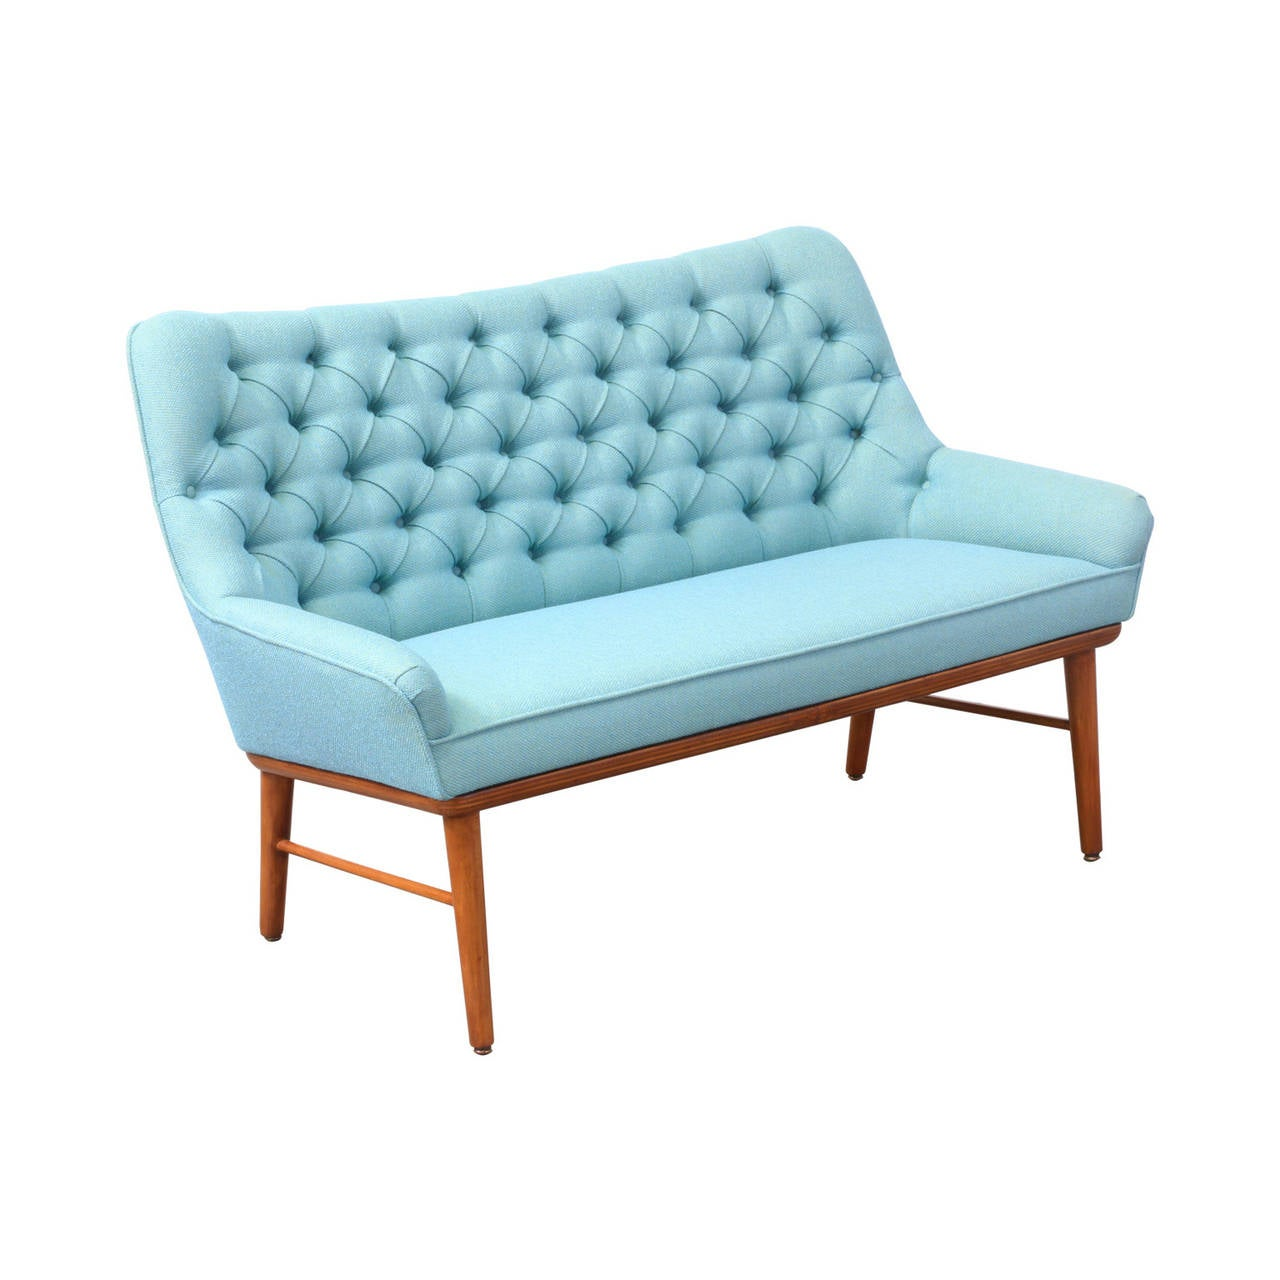 Mid Century Modern Tufted Loveseat For Sale At 1stdibs